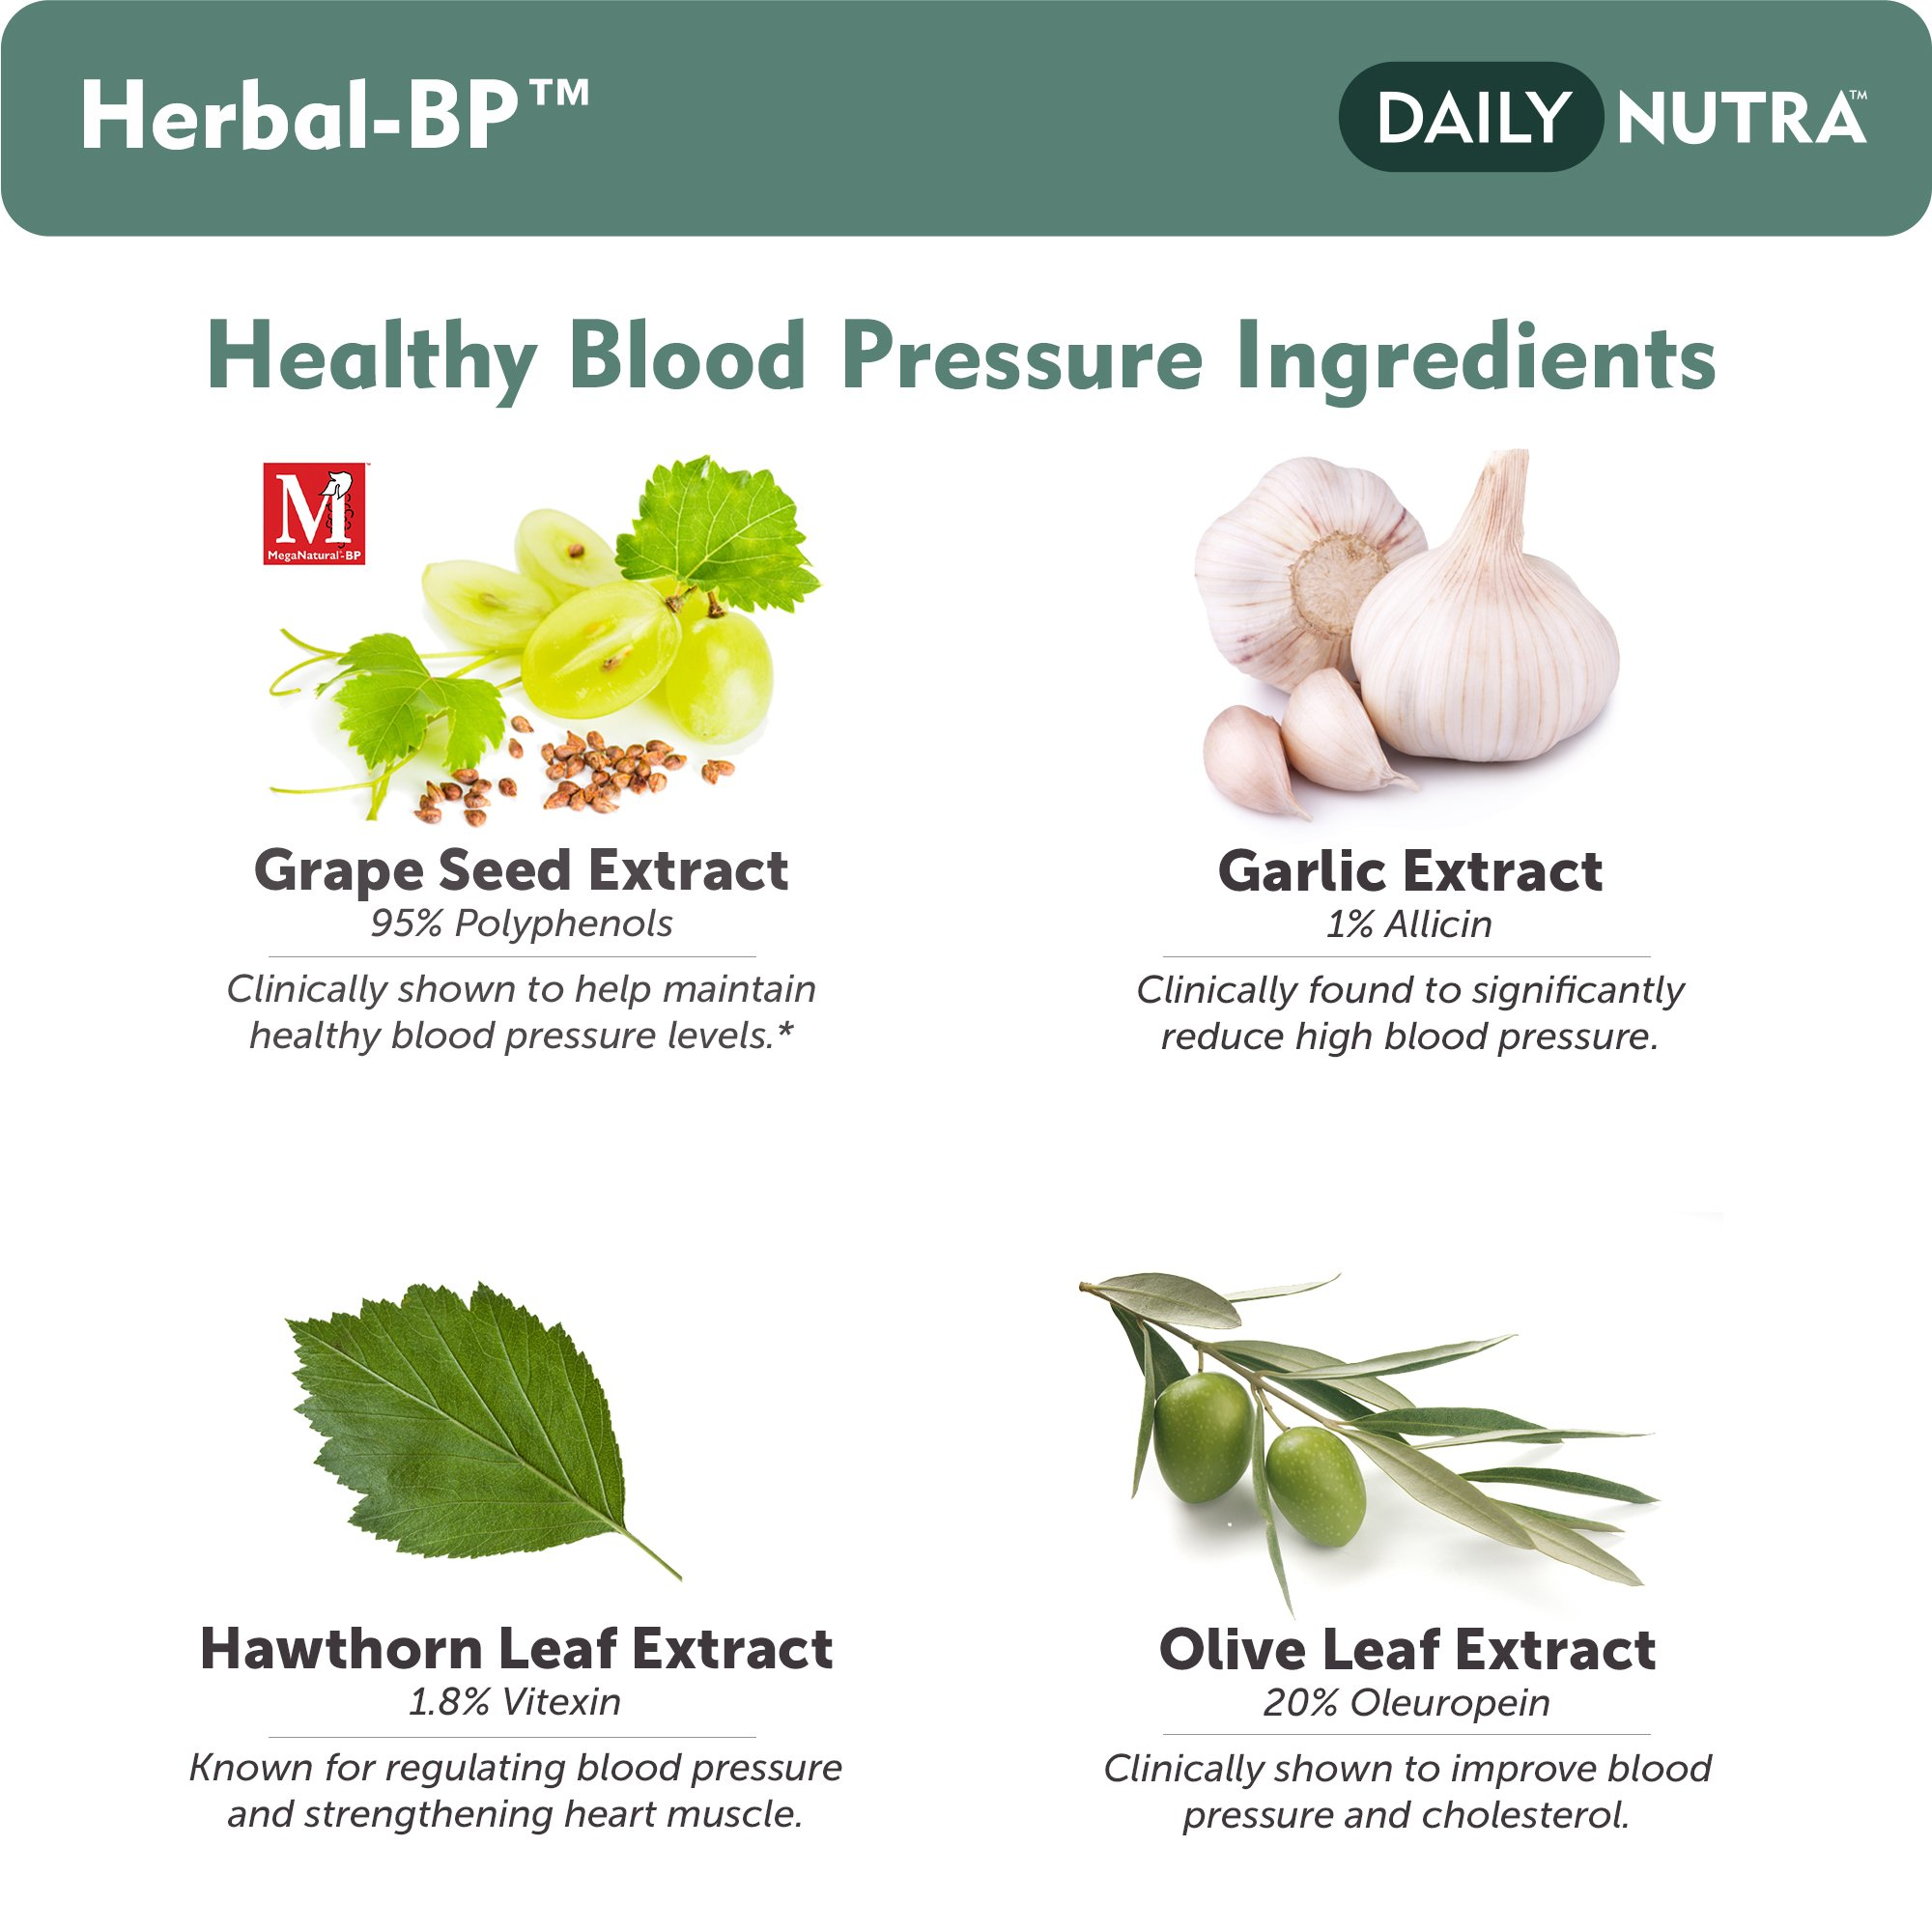 Herbal-BP Natural Blood Pressure Support with Stress Management - Medical Grade Botanical Extracts - Safe, Long-Term Support (3-Pack) by DailyNutra (Image #3)